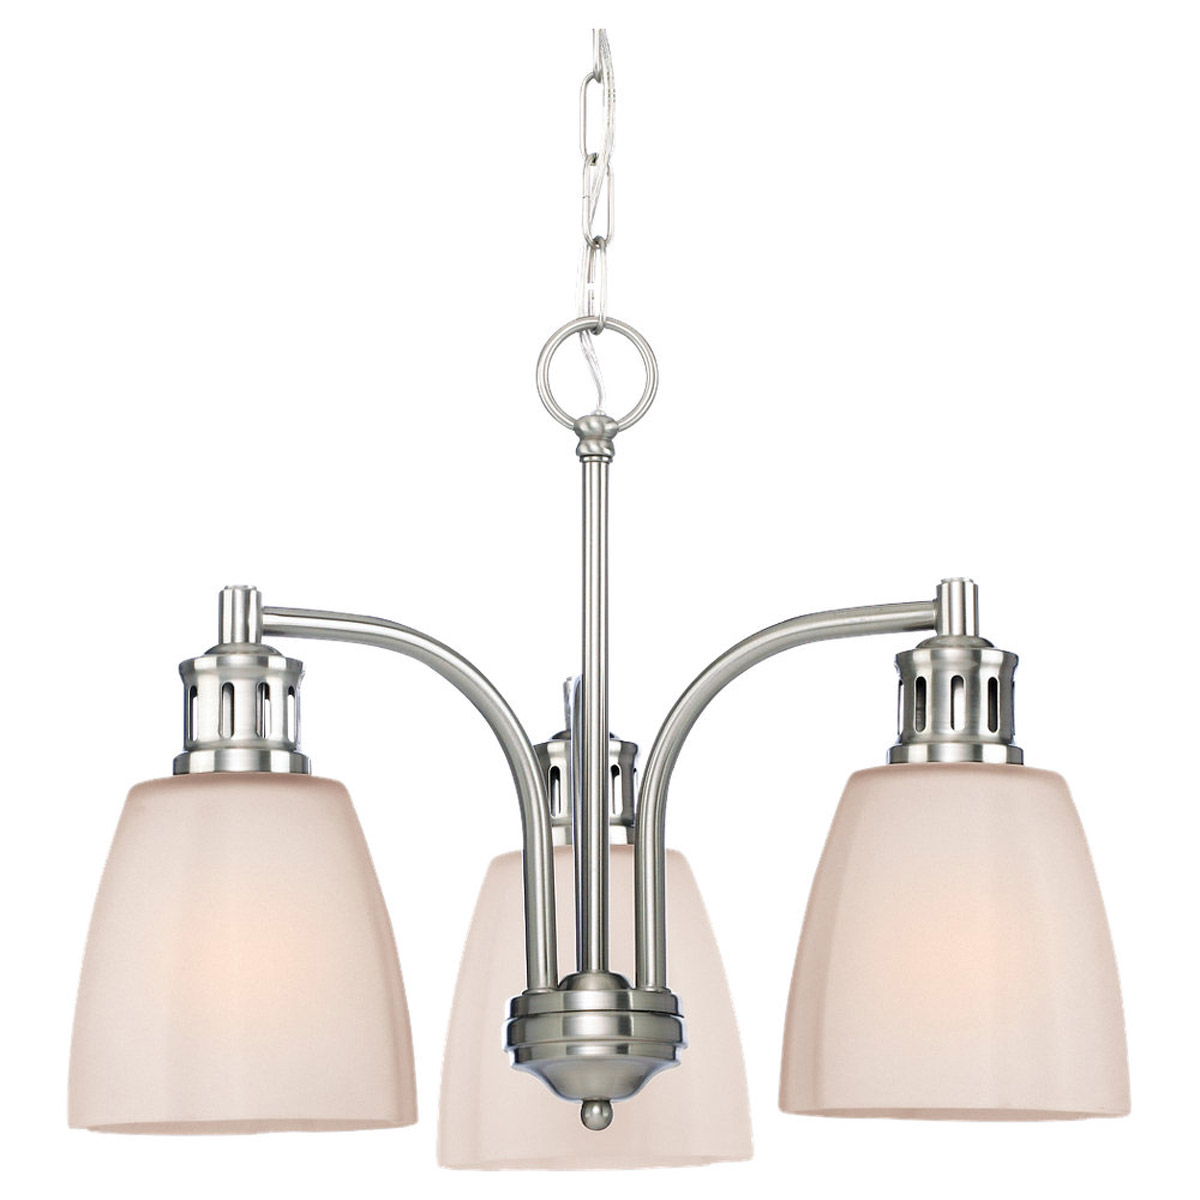 Sea Gull Lighting Century 3 Light Chandelier in Brushed Nickel 31474-962